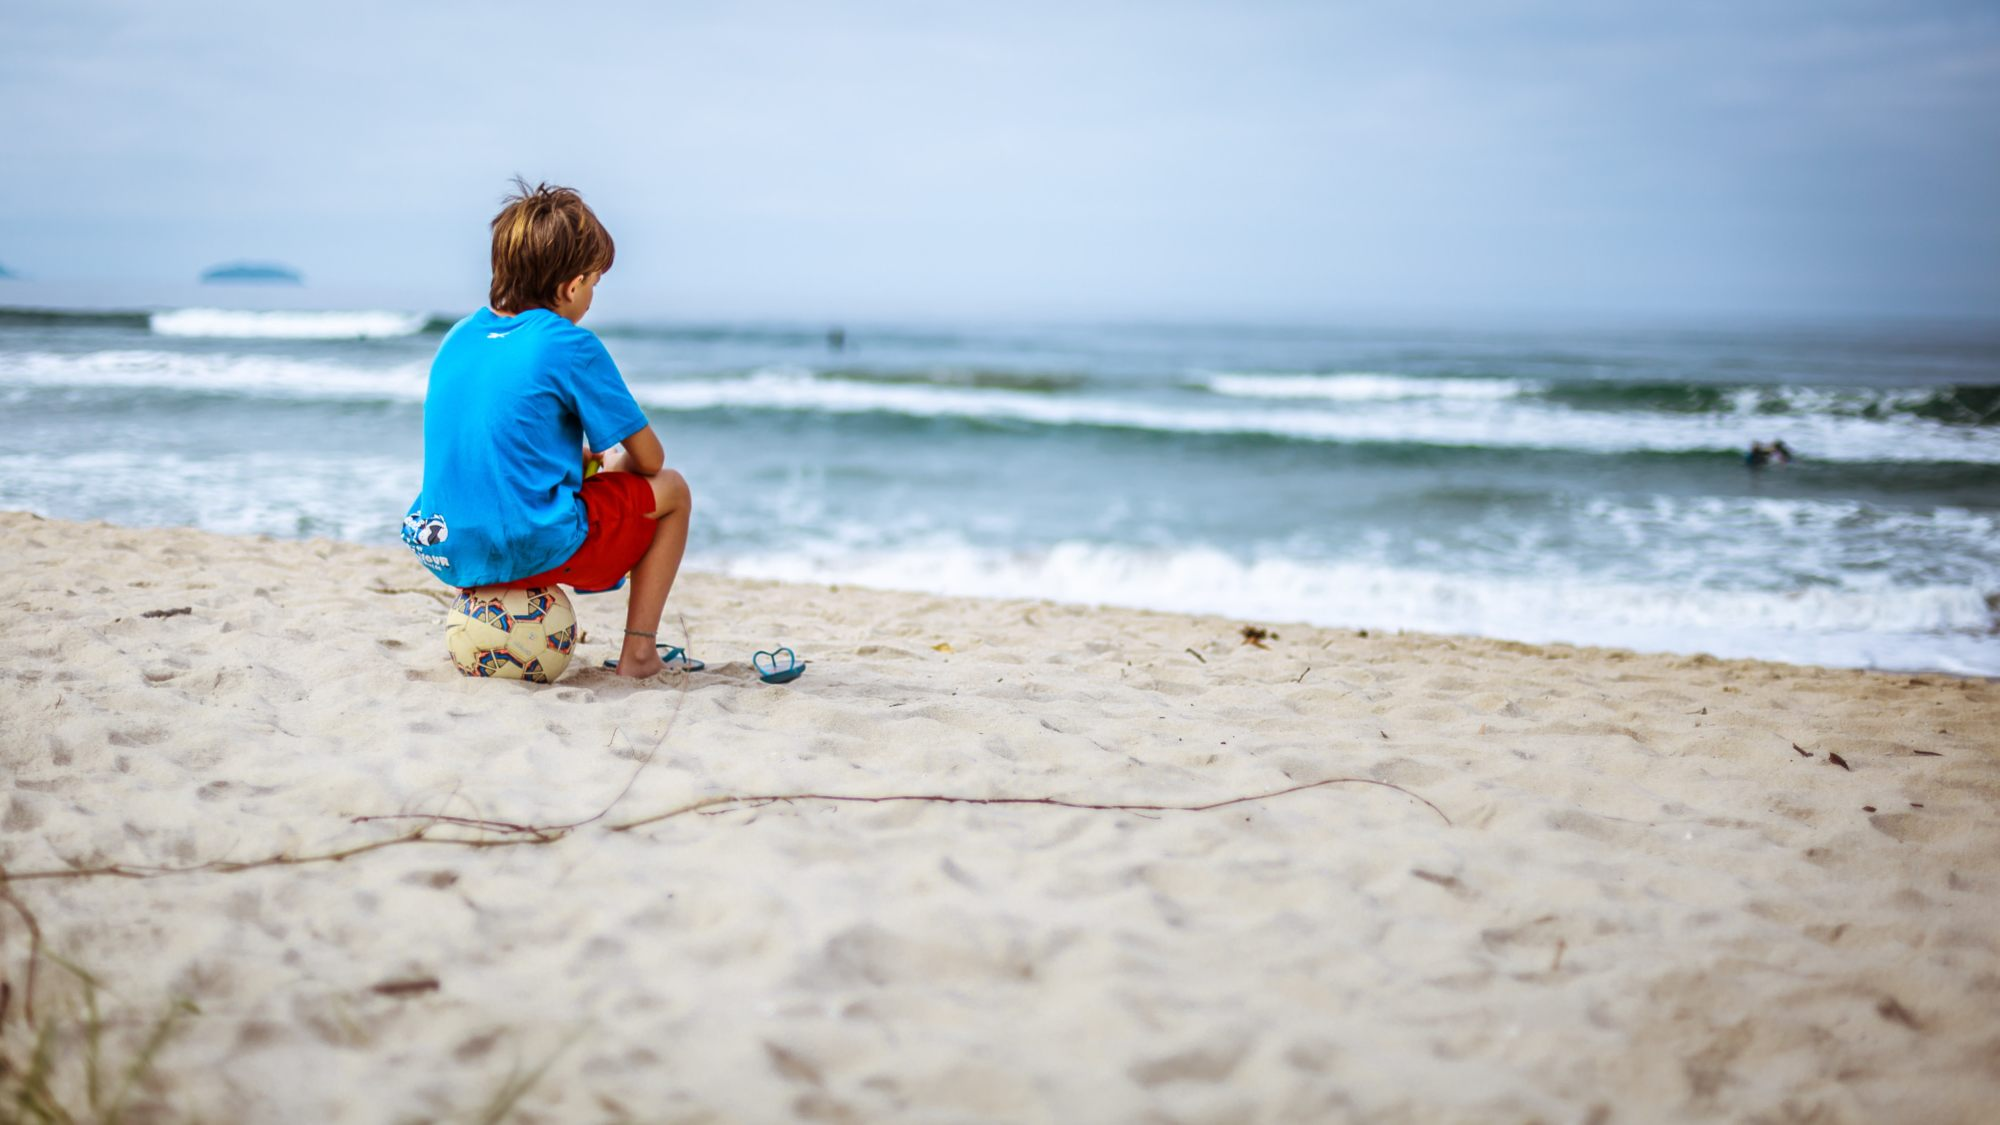 Child at the beach for summer break sitting on a soccer ball